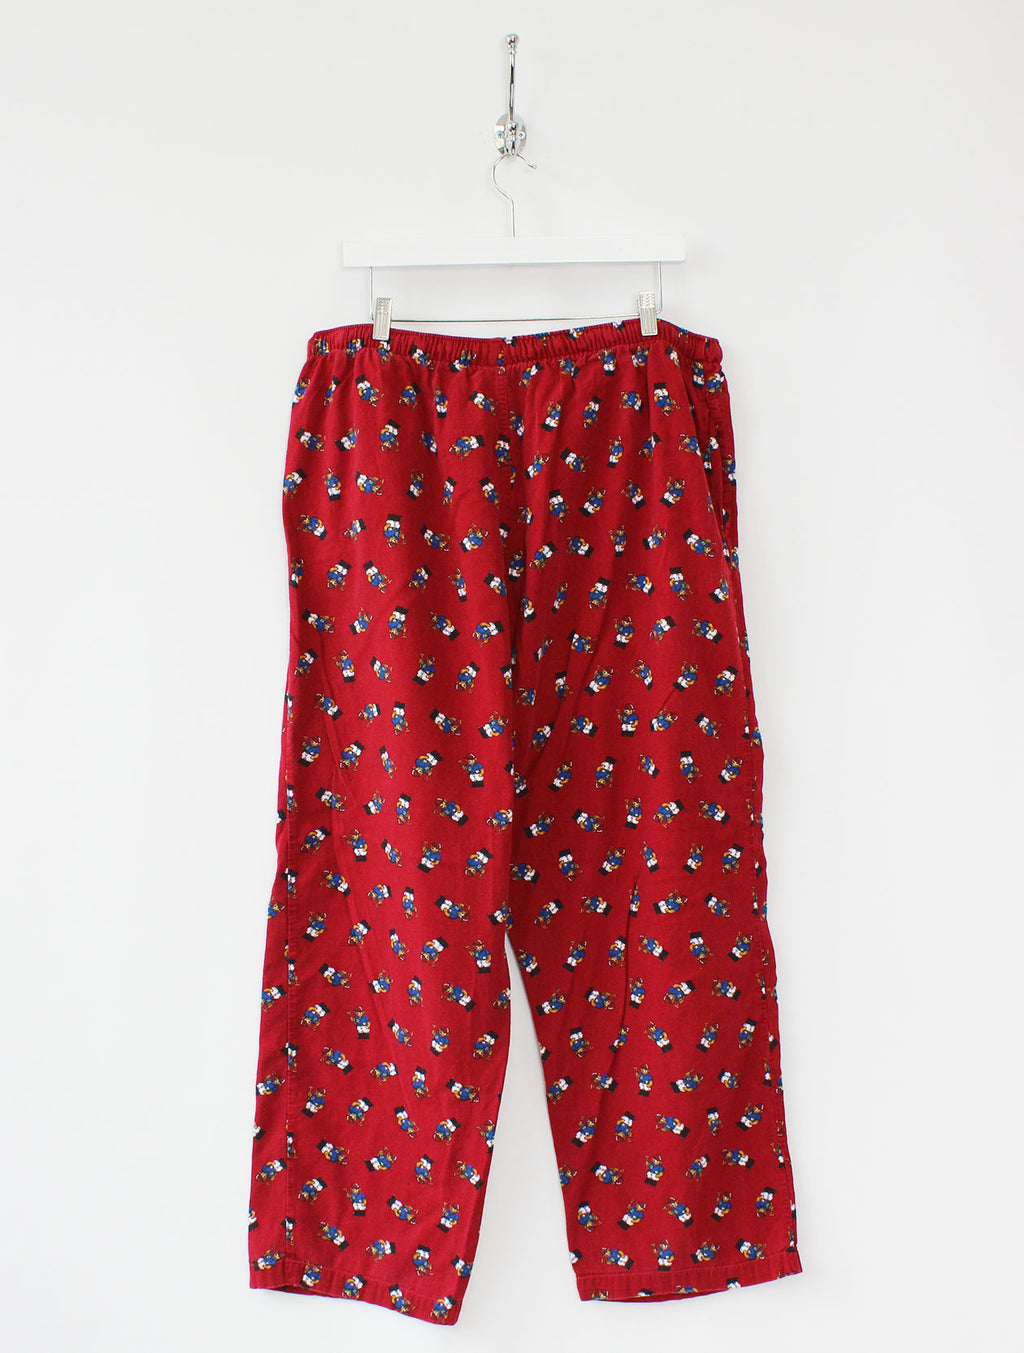 Ralph Lauren Polo Bear Lounge Pants (L)